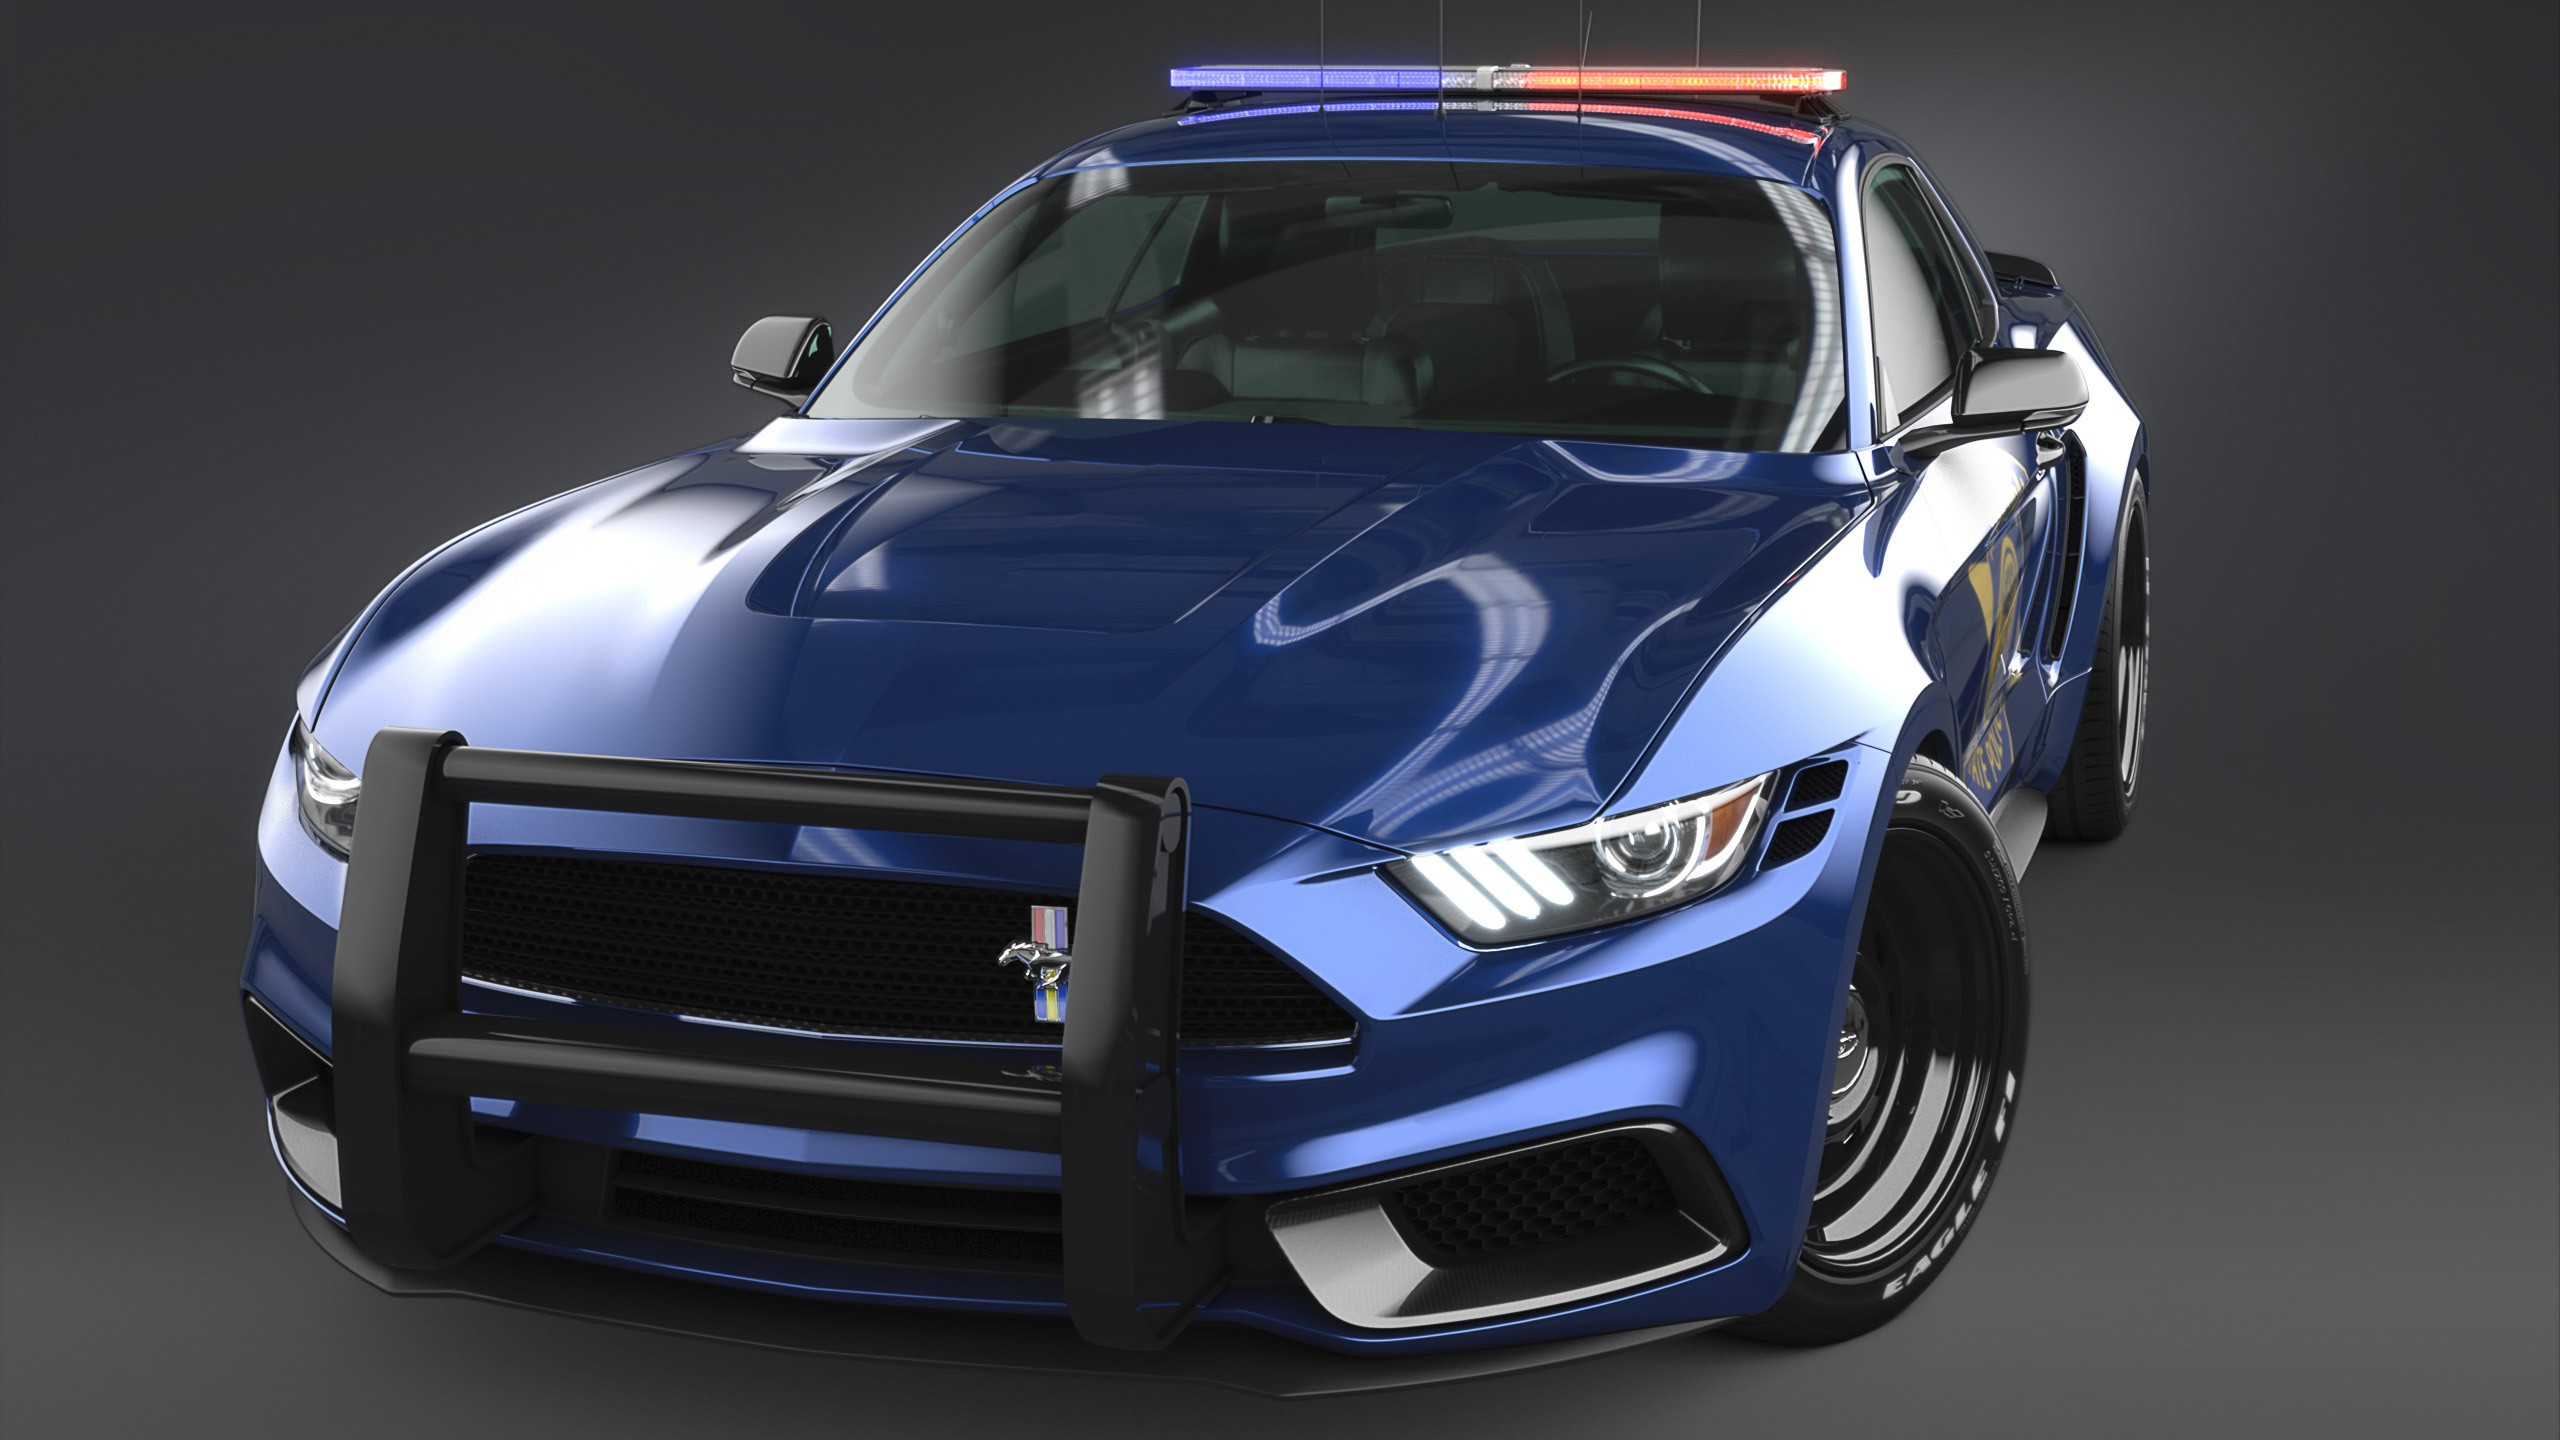 2017 Shelby Gt500 >> 2017 Ford Mustang NotchBack Design Police 3 Wallpaper | HD ...